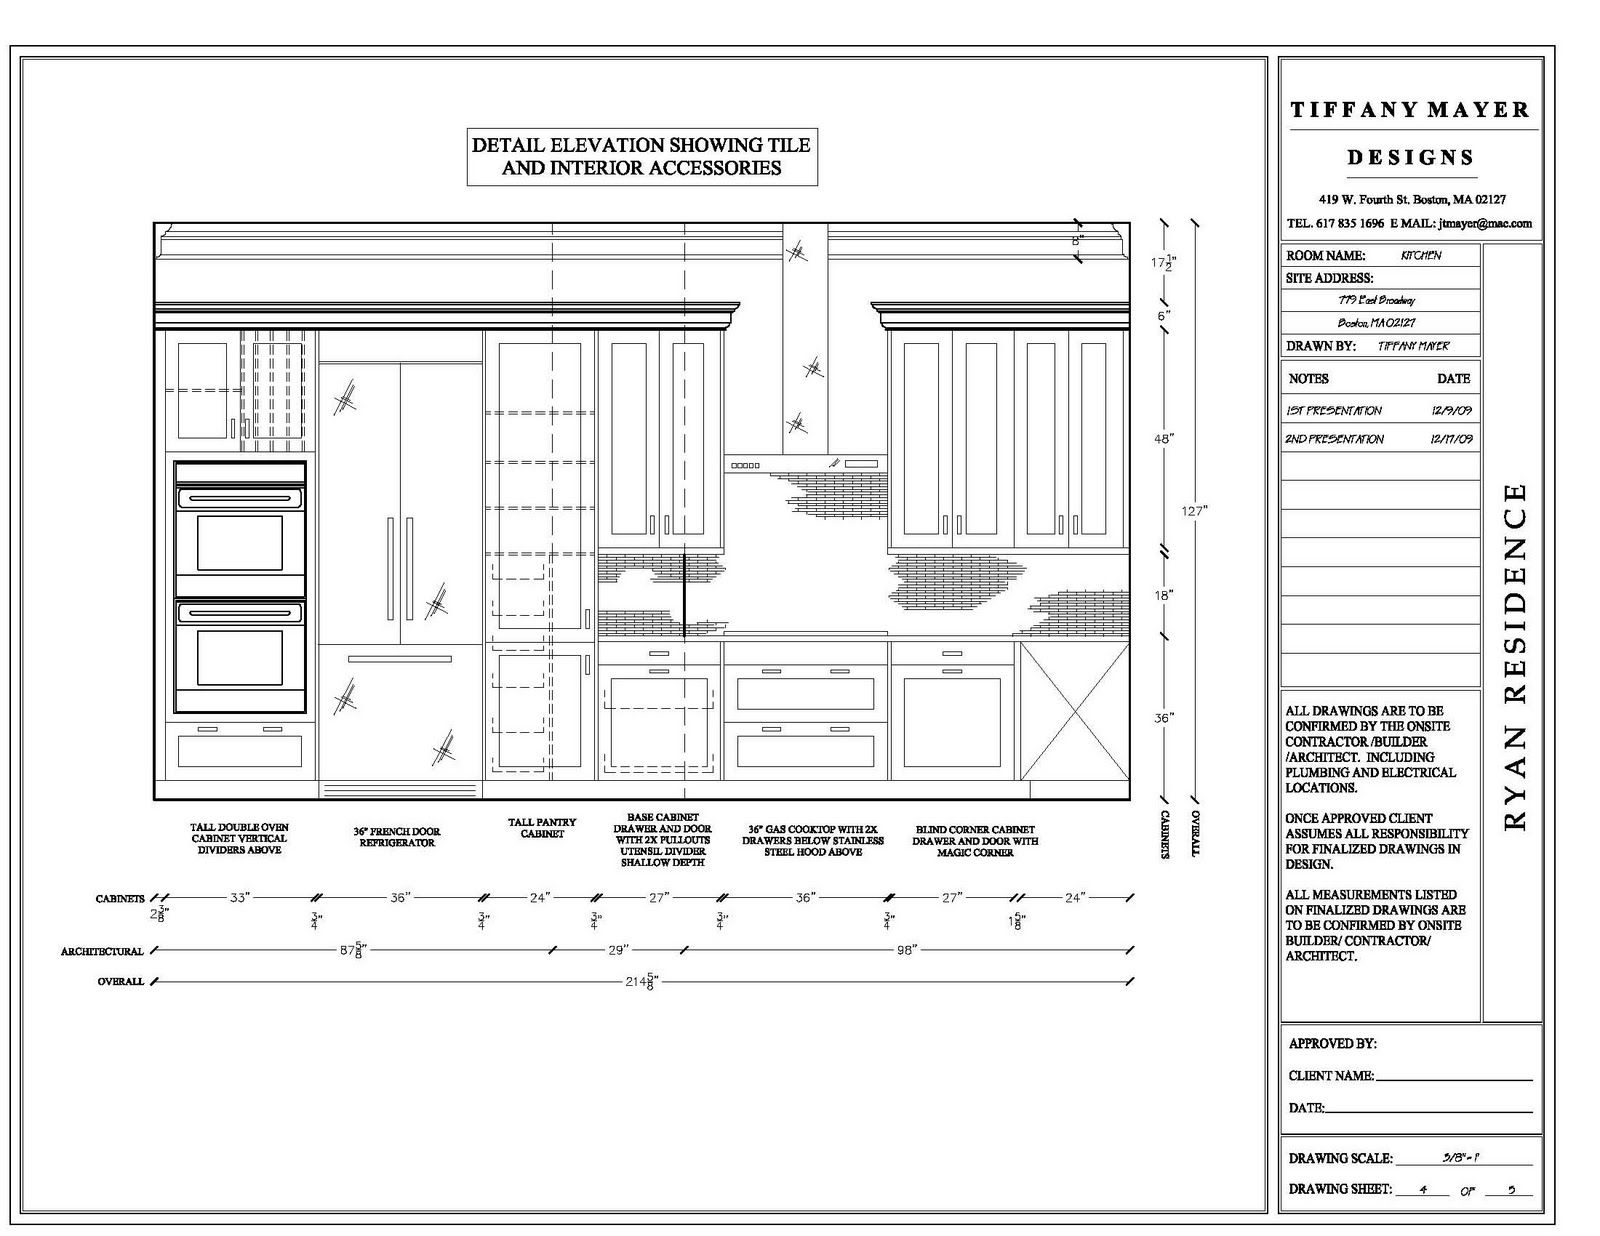 Elevation Plan Template : Detail drawing size interior design elevation drawings